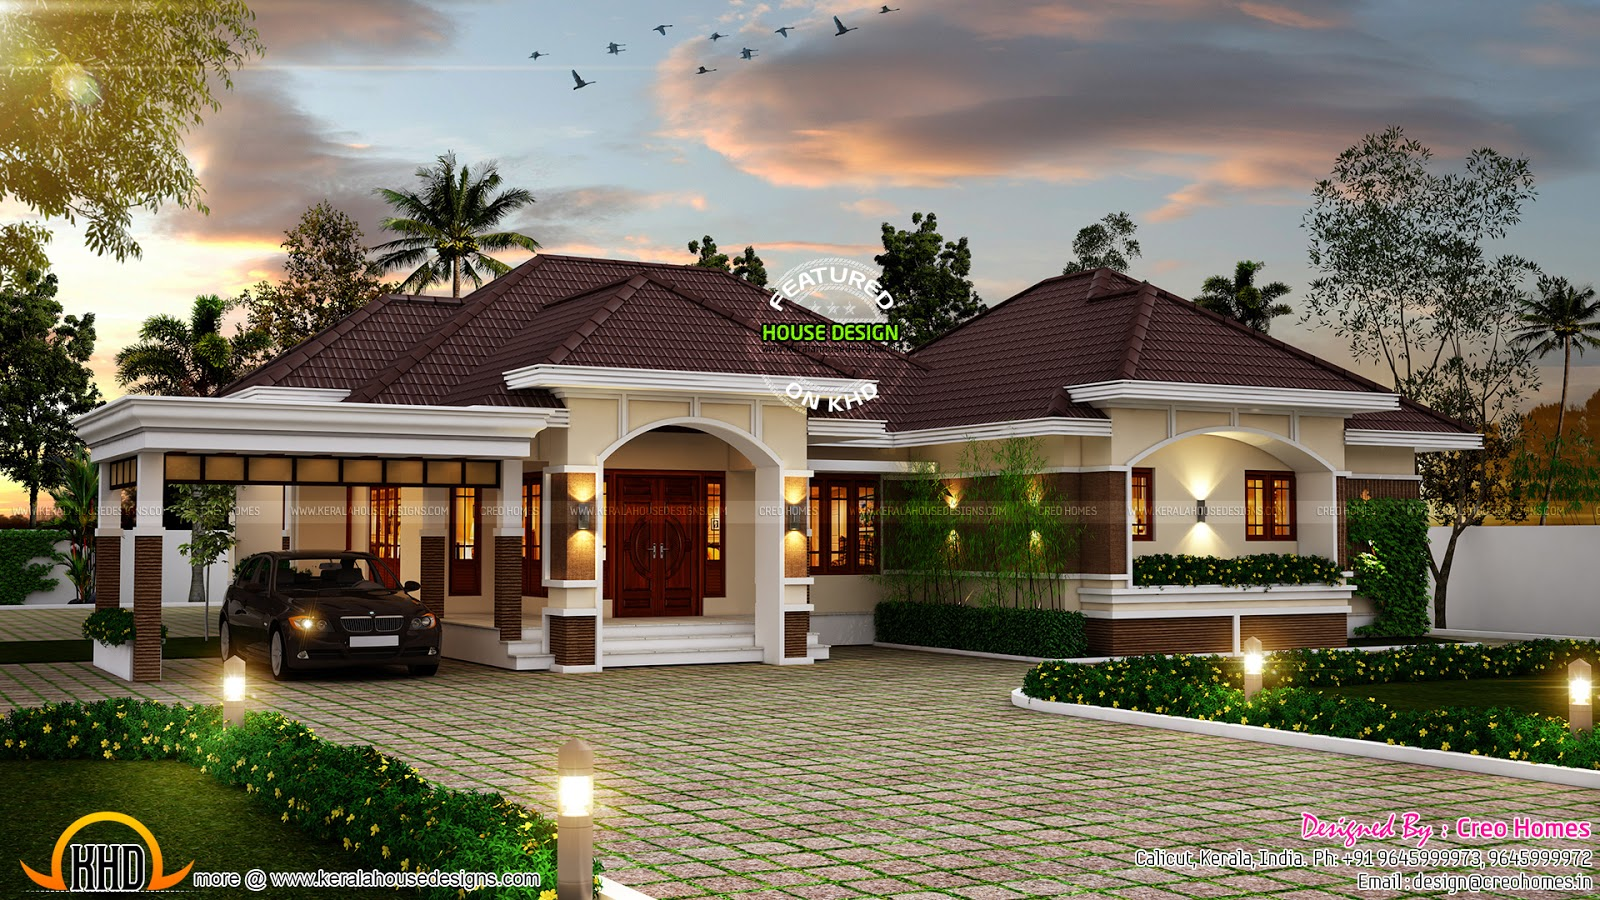 Outstanding bungalow in kerala kerala home design and for Kerala style house plans with photos